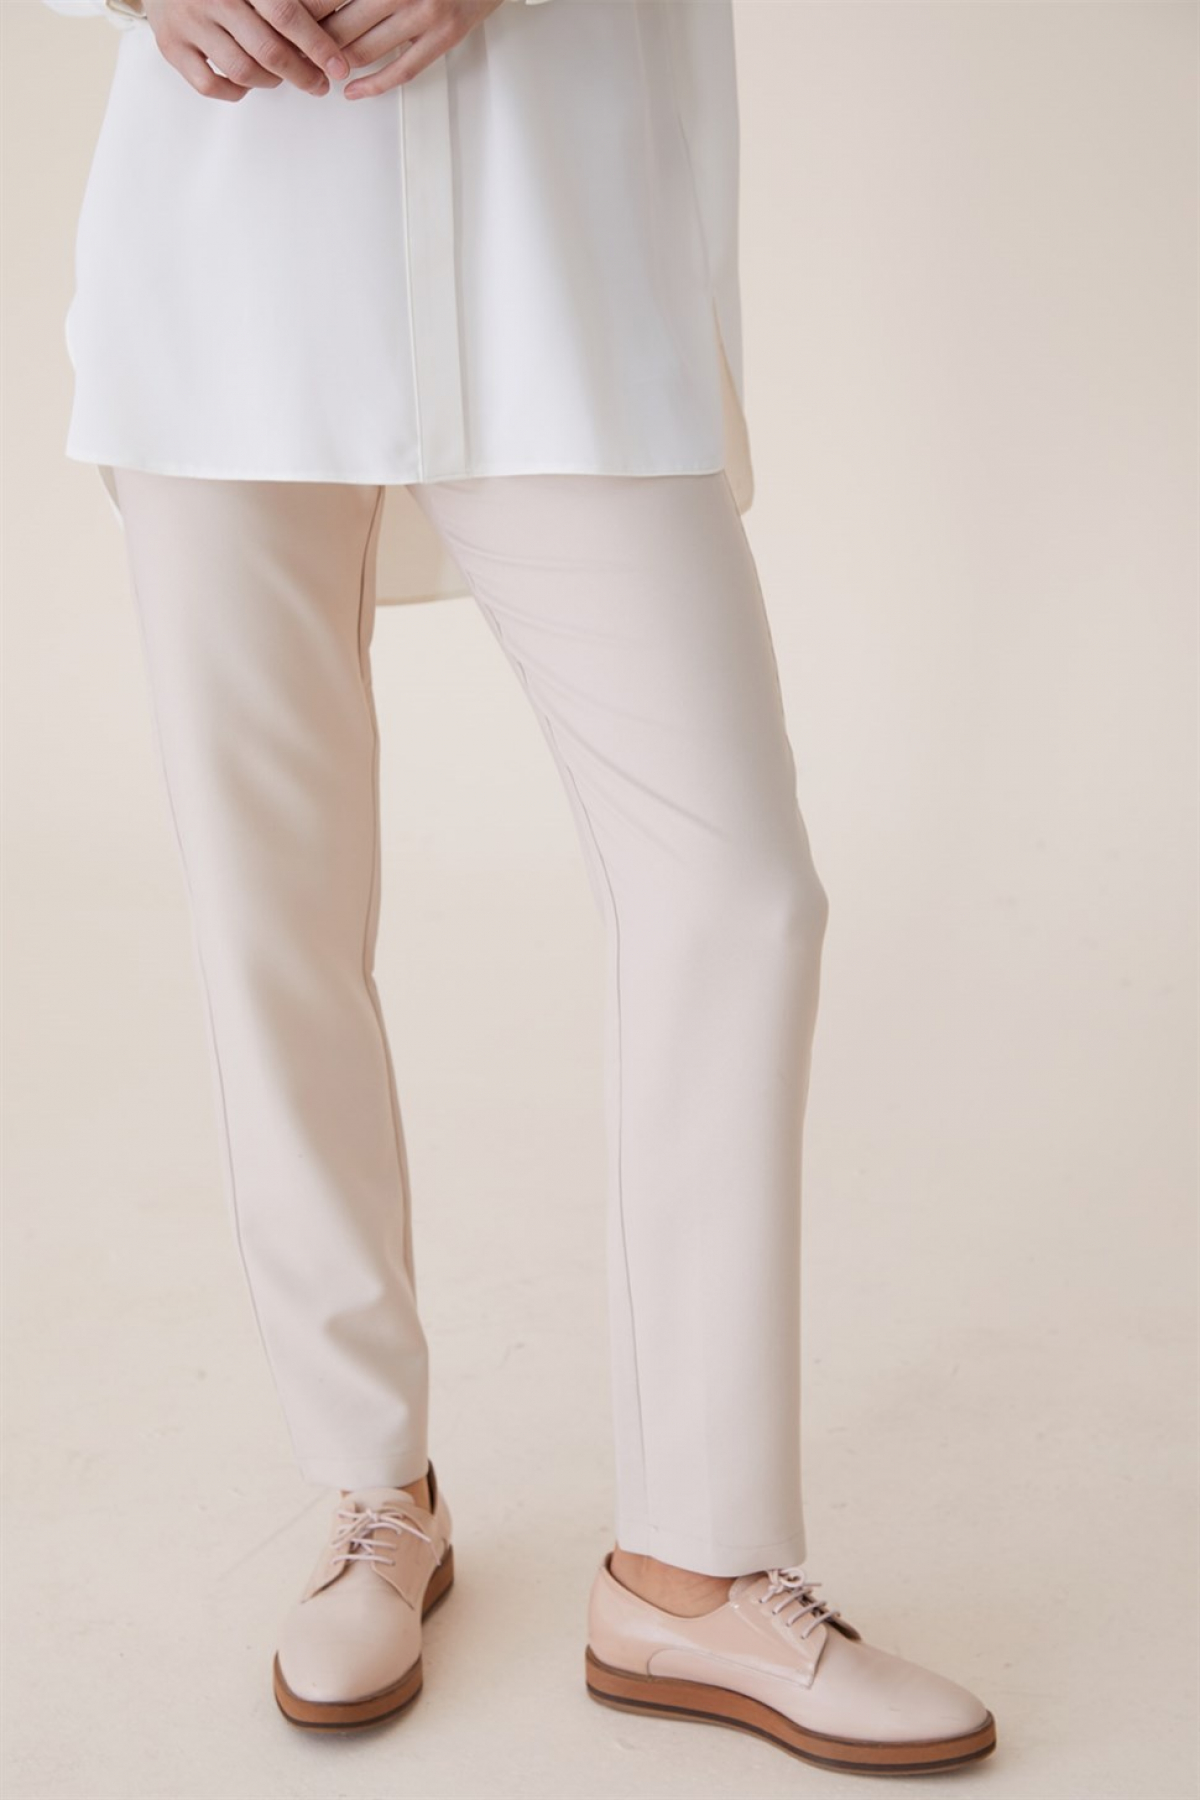 Armine Women's Short Trousers - 9Y8026 Beige